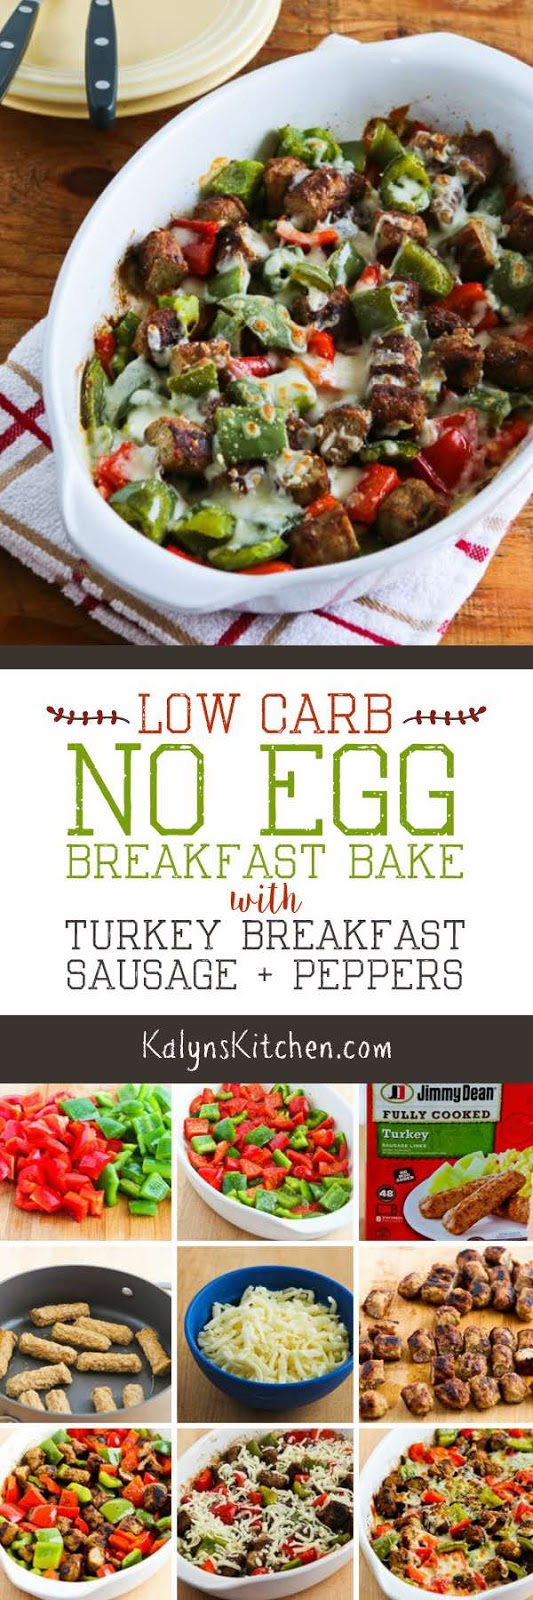 Carb Buster Breakfast The Pioneer Woman Cooks Baked Eggs With Mushrooms And Parmesan Kalyns Kitchen Low Skillet Iowa Girl Eats